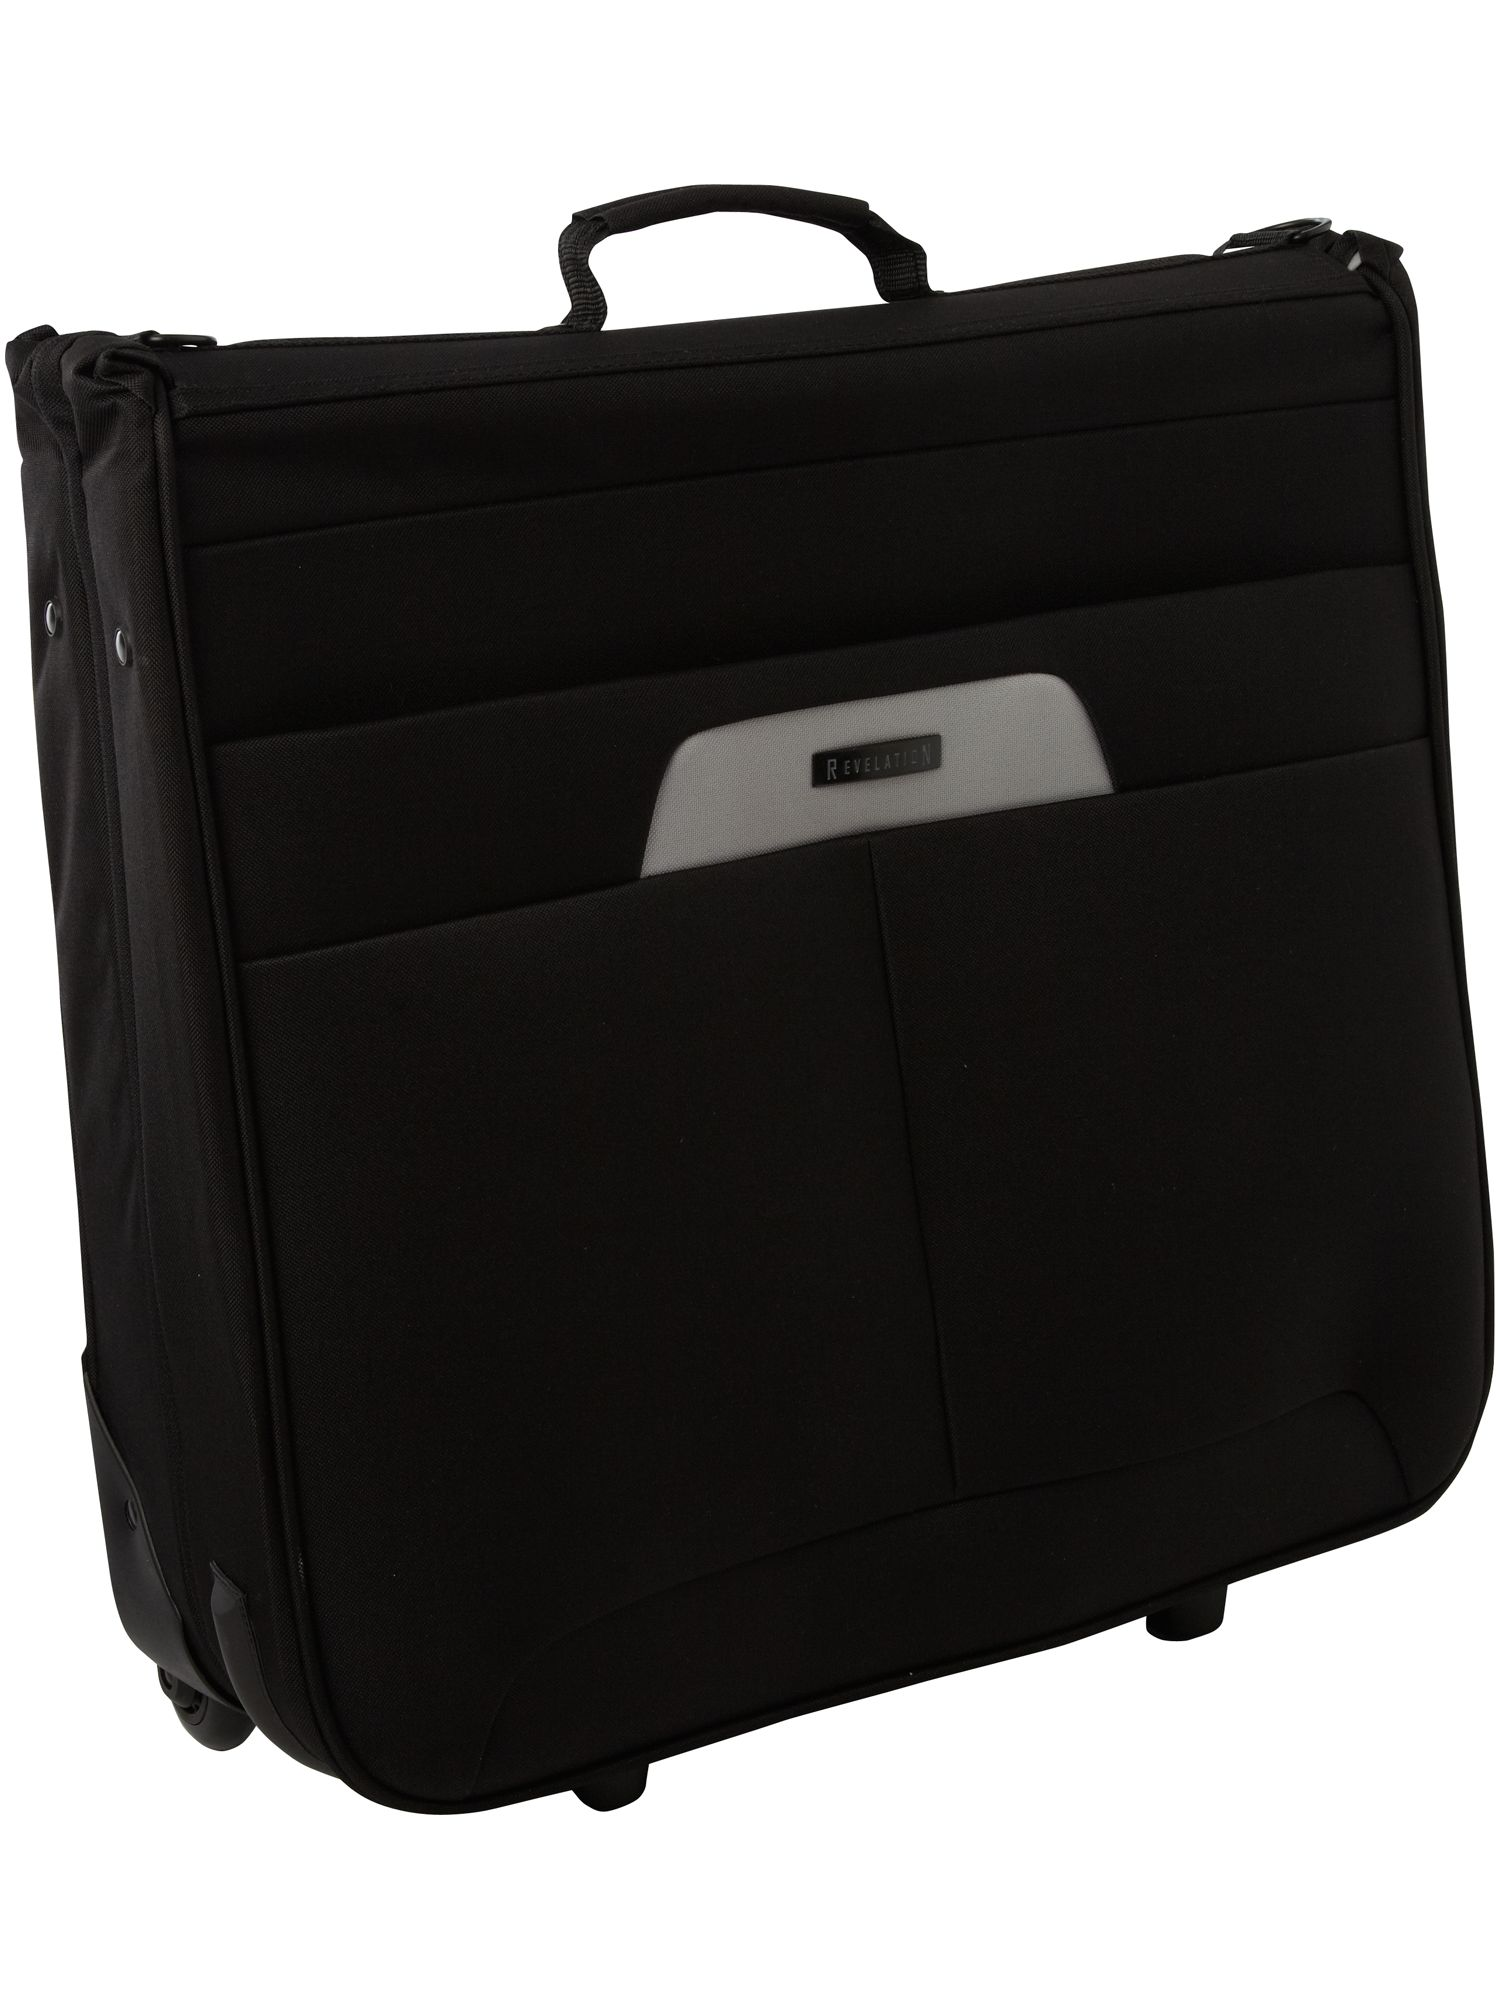 Couriere 53cm wheeled garment carrier